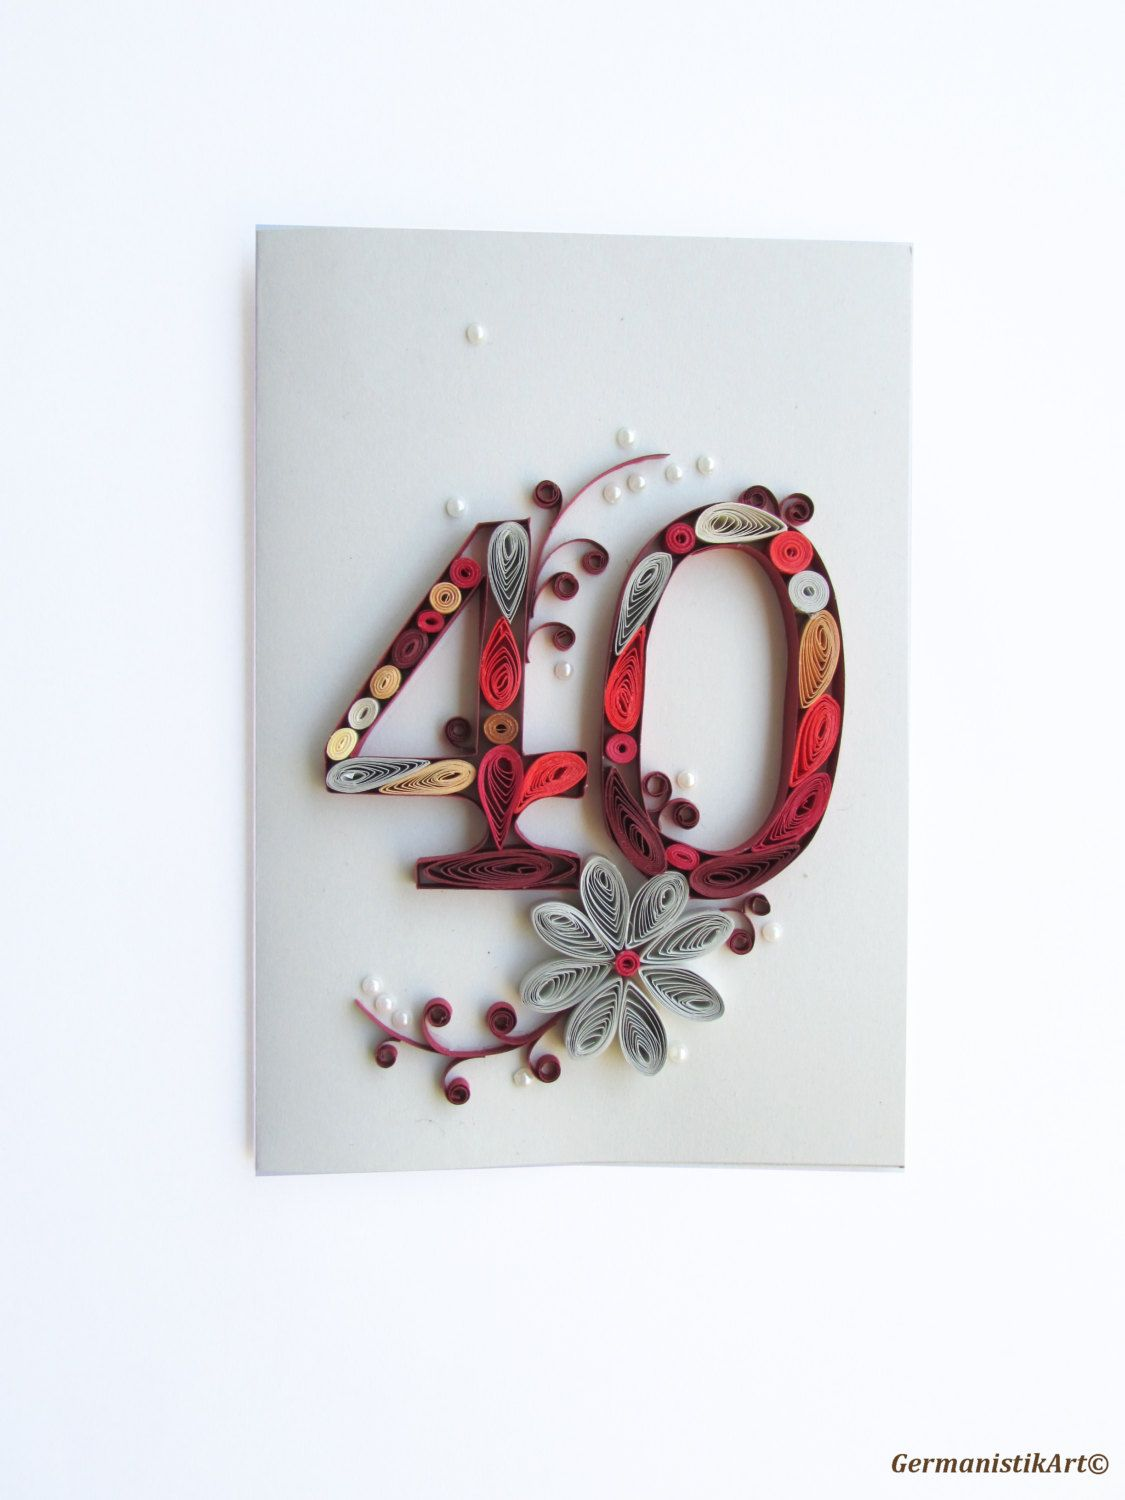 Happy 40th Birthday Card Personalised Quilling Wedding Anniversary Card Blank 40th Birthday Card Number Card 40th Birthday Cards Wedding Anniversary Cards 40th Birthday Gifts